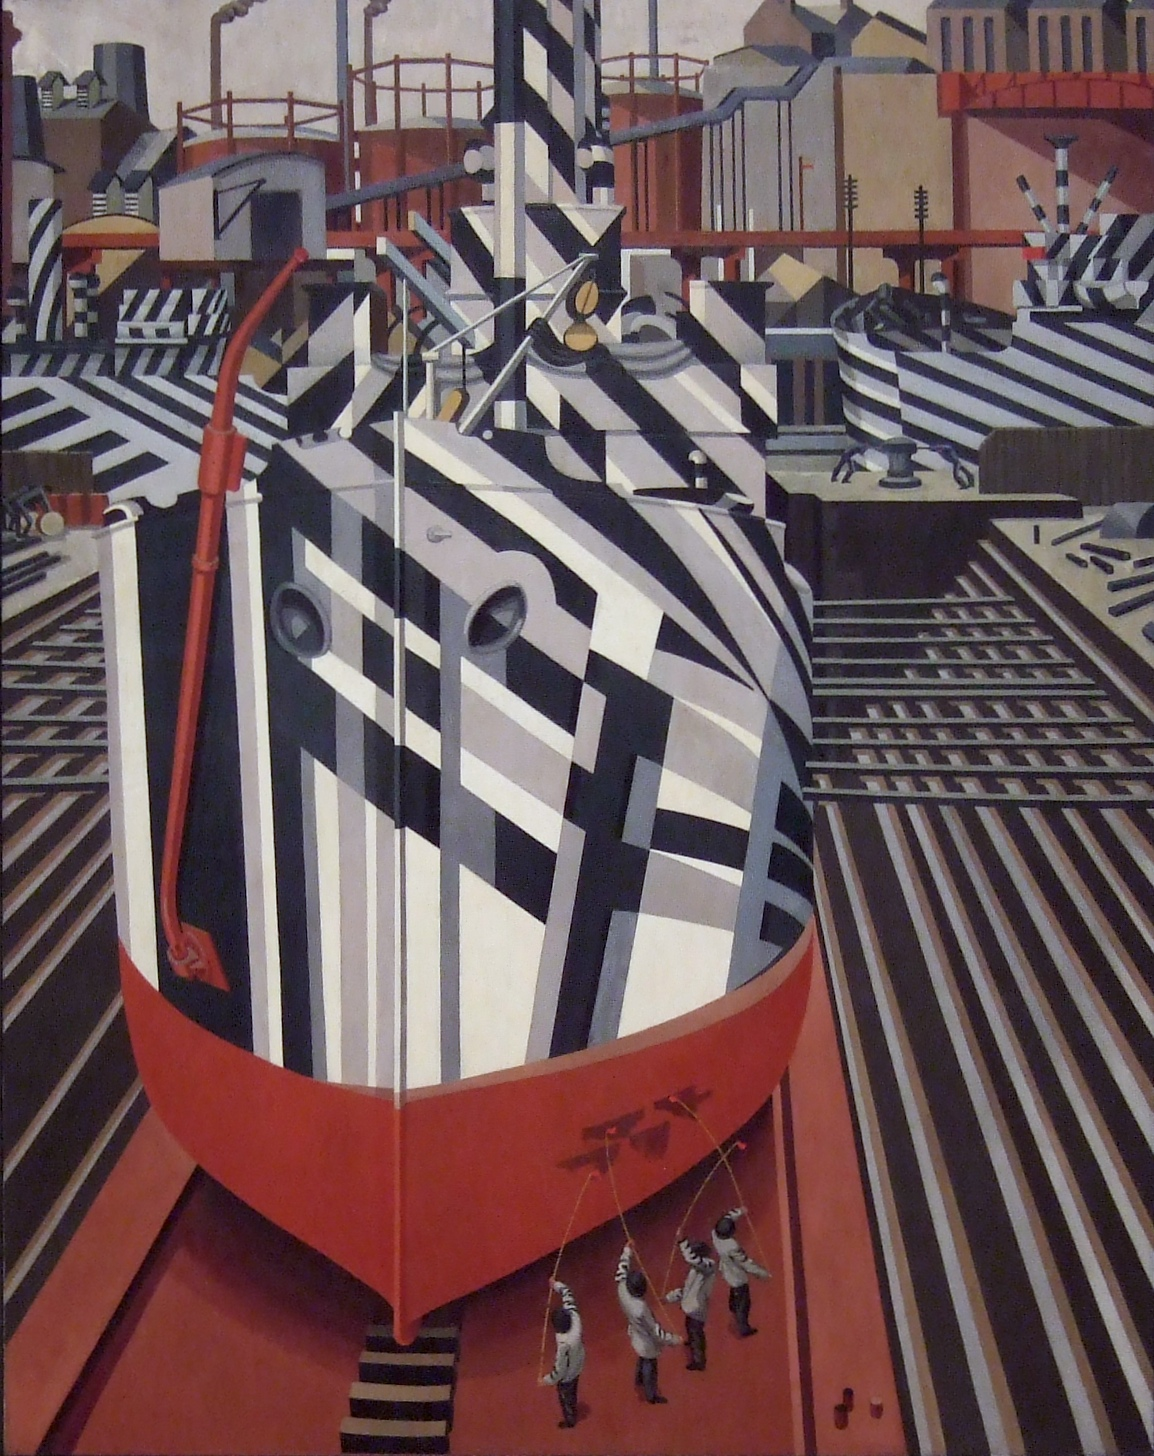 """Dazzle-ships in Drydock at Liverpool"", Edward Wadsworth, 1919."